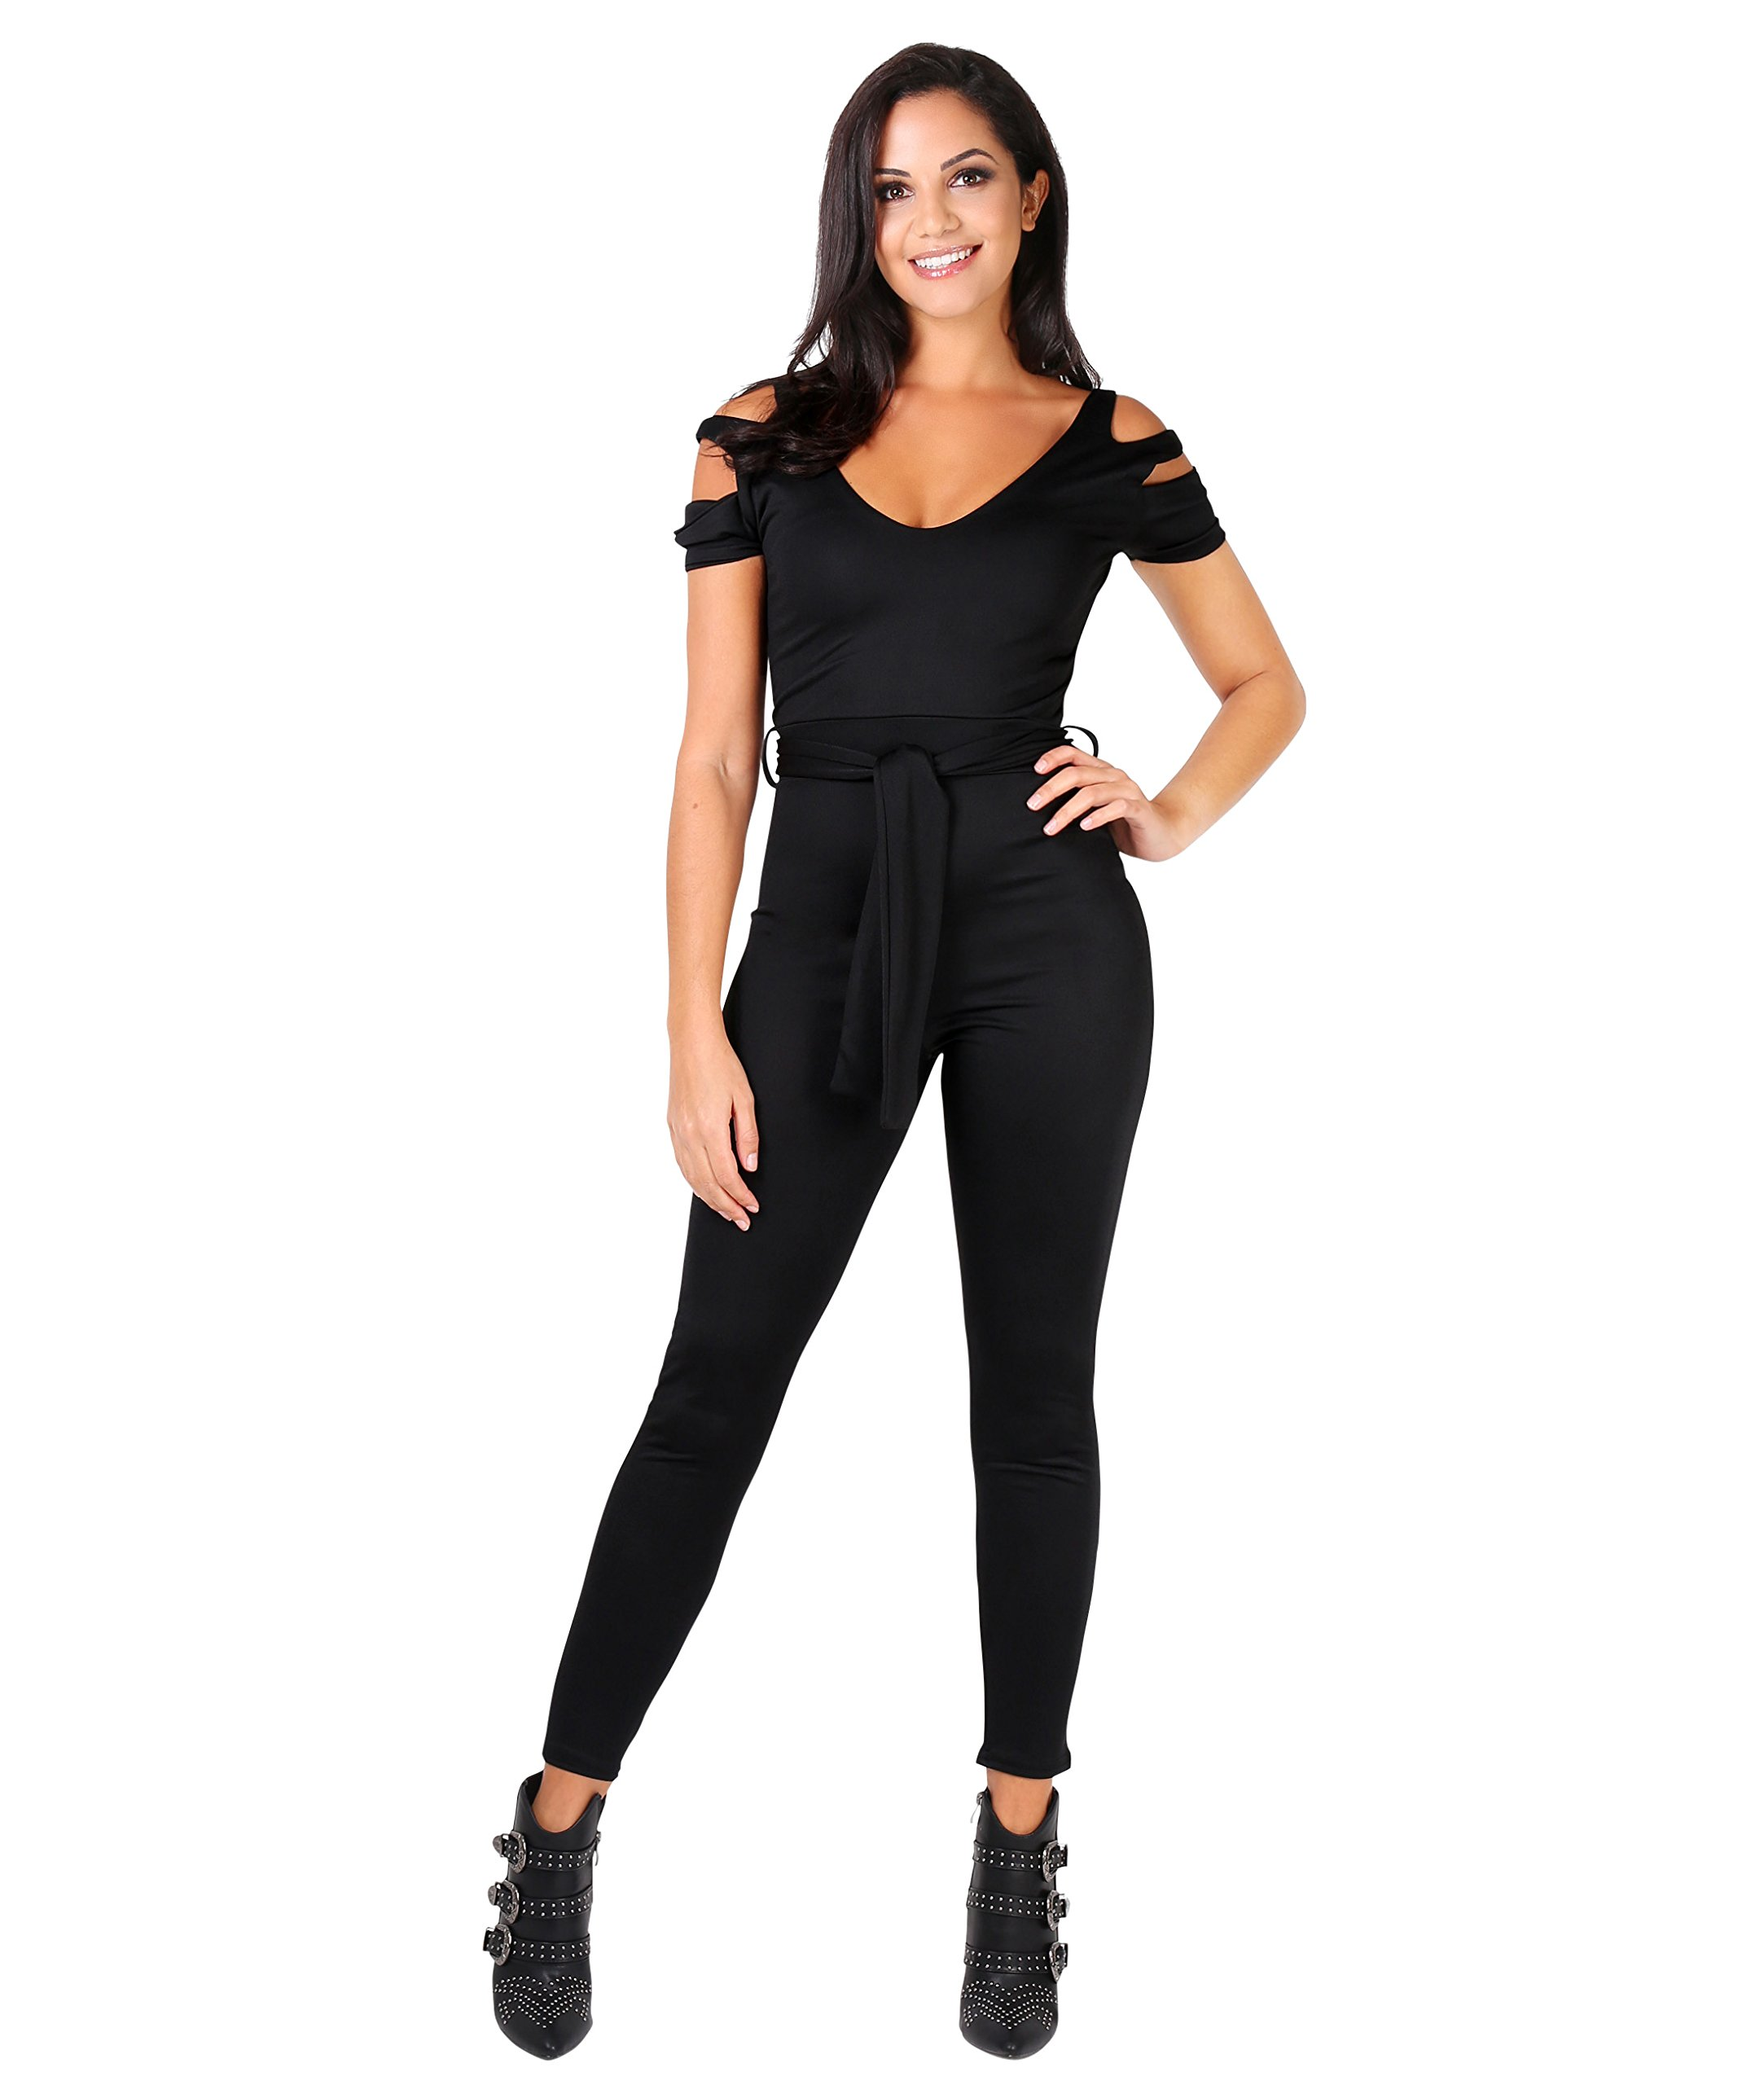 KRISP Cut Out Jumpsuit (Black, US 10),[4639-BLK-14]